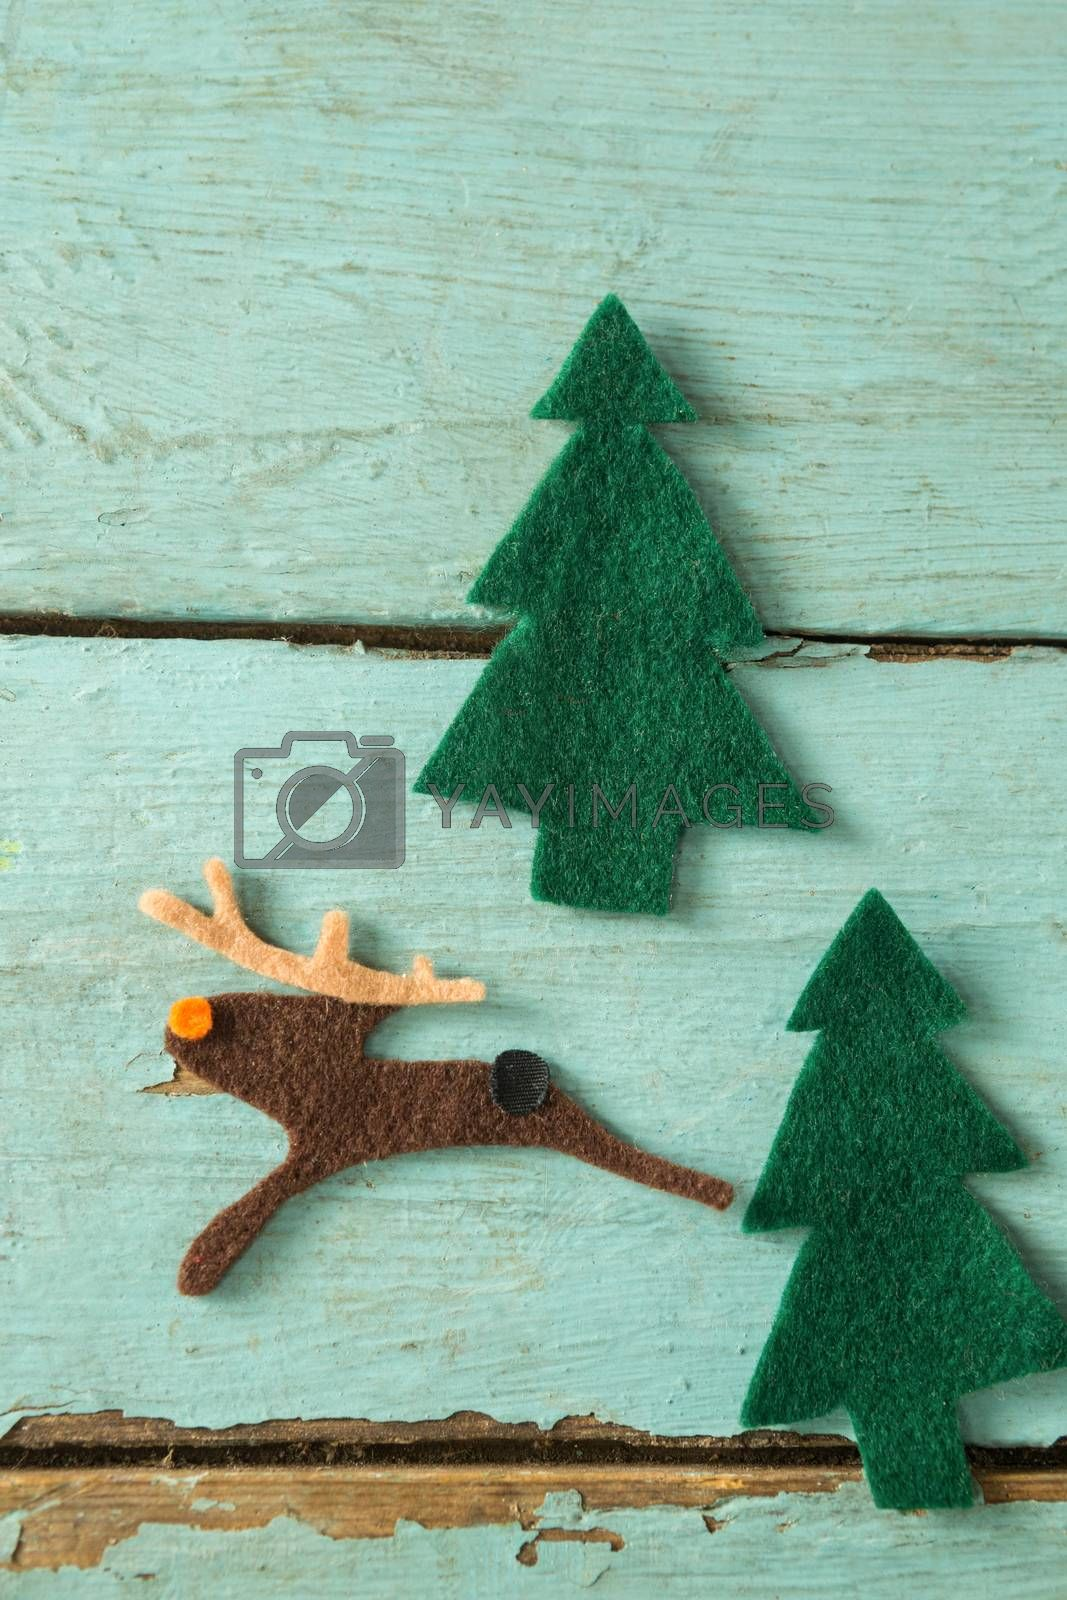 Christmas decorations on wooden plank by Wavebreakmedia